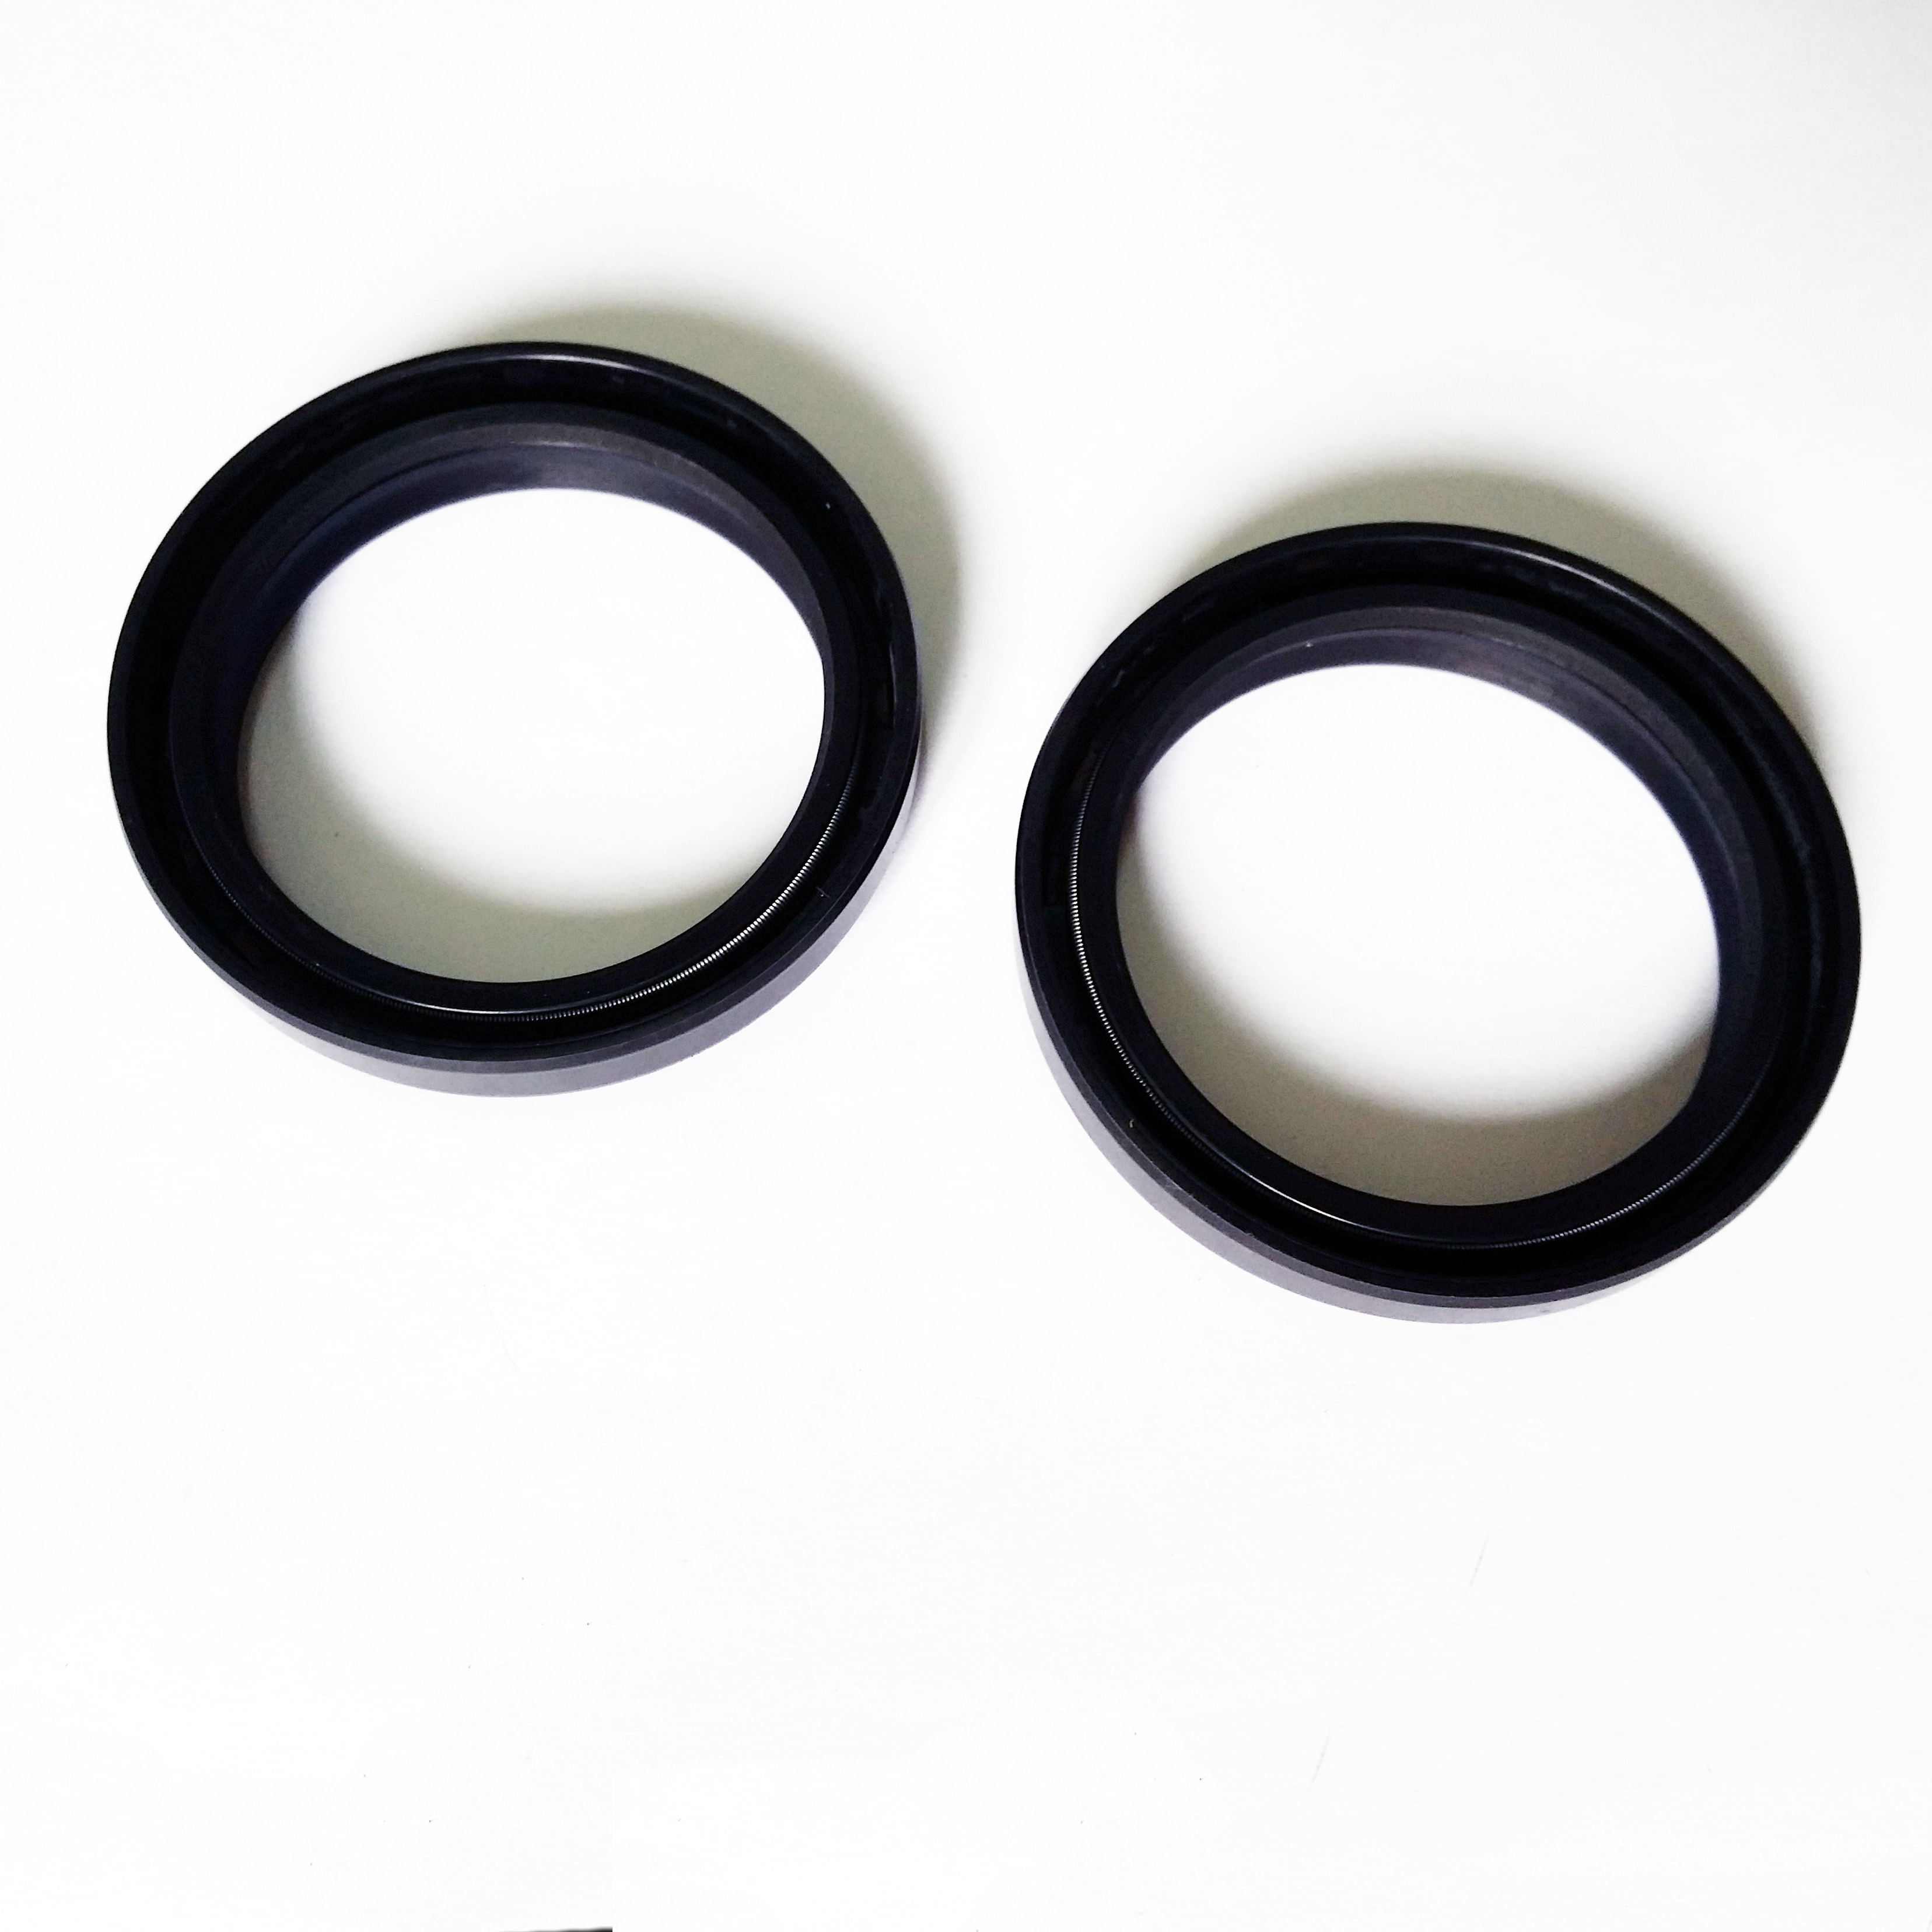 K-Tech Suzuki GSXR750 1996-2003 NOK Front Fork Oil Seals 43x54x11mm